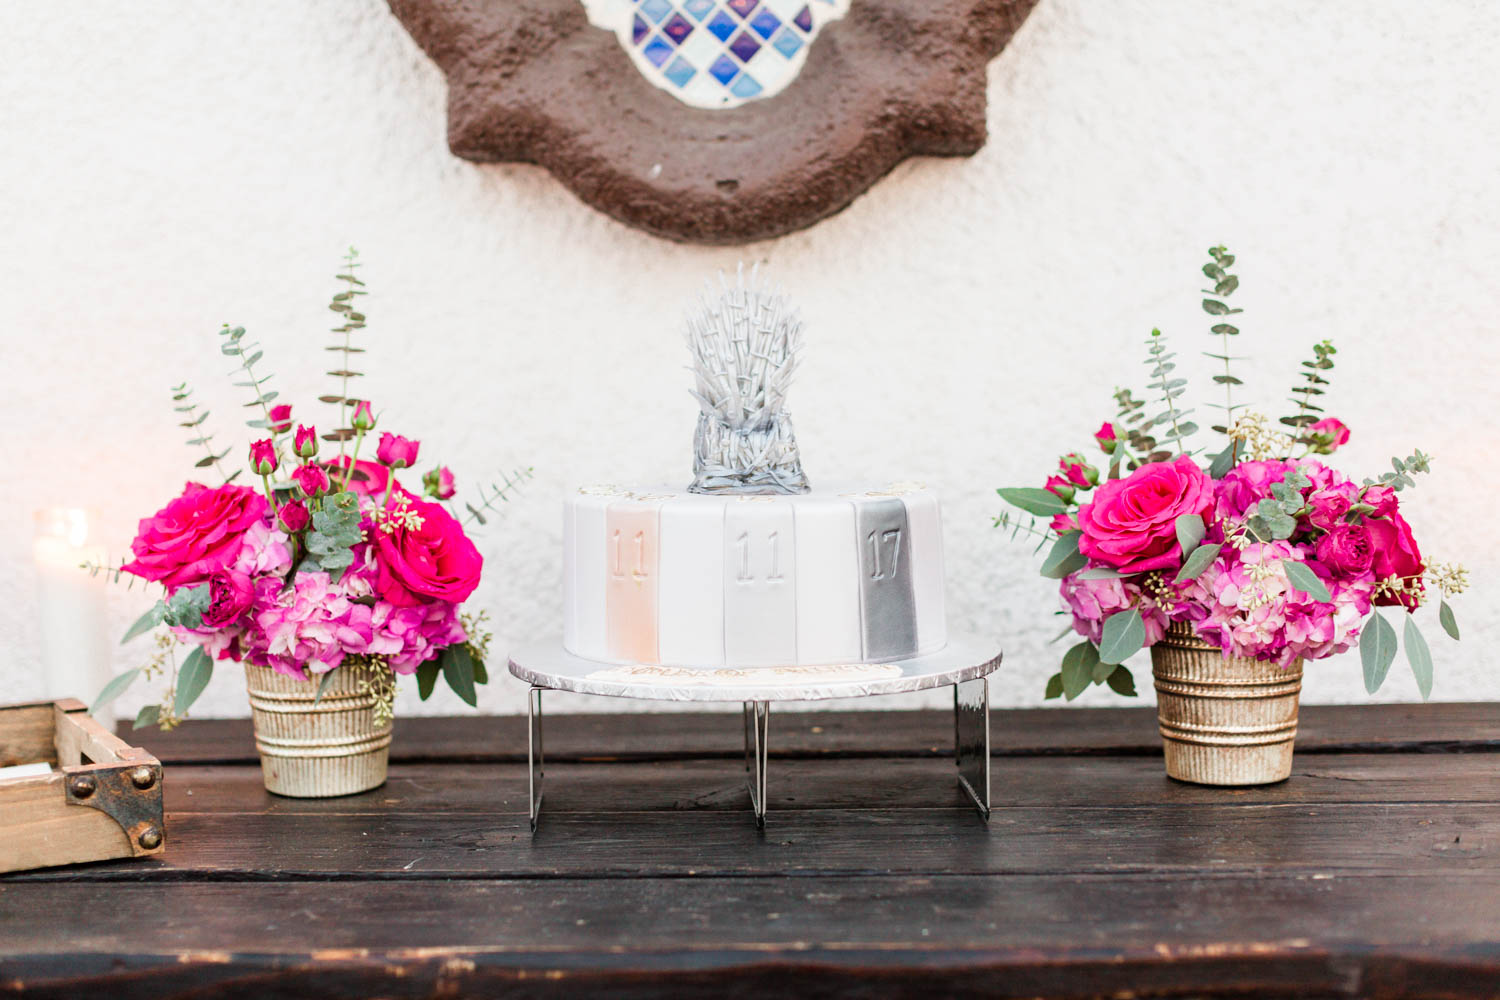 Game of Thrones wedding cake surrounded by pink and green flower arrangements, Cavin Elizabeth Photography